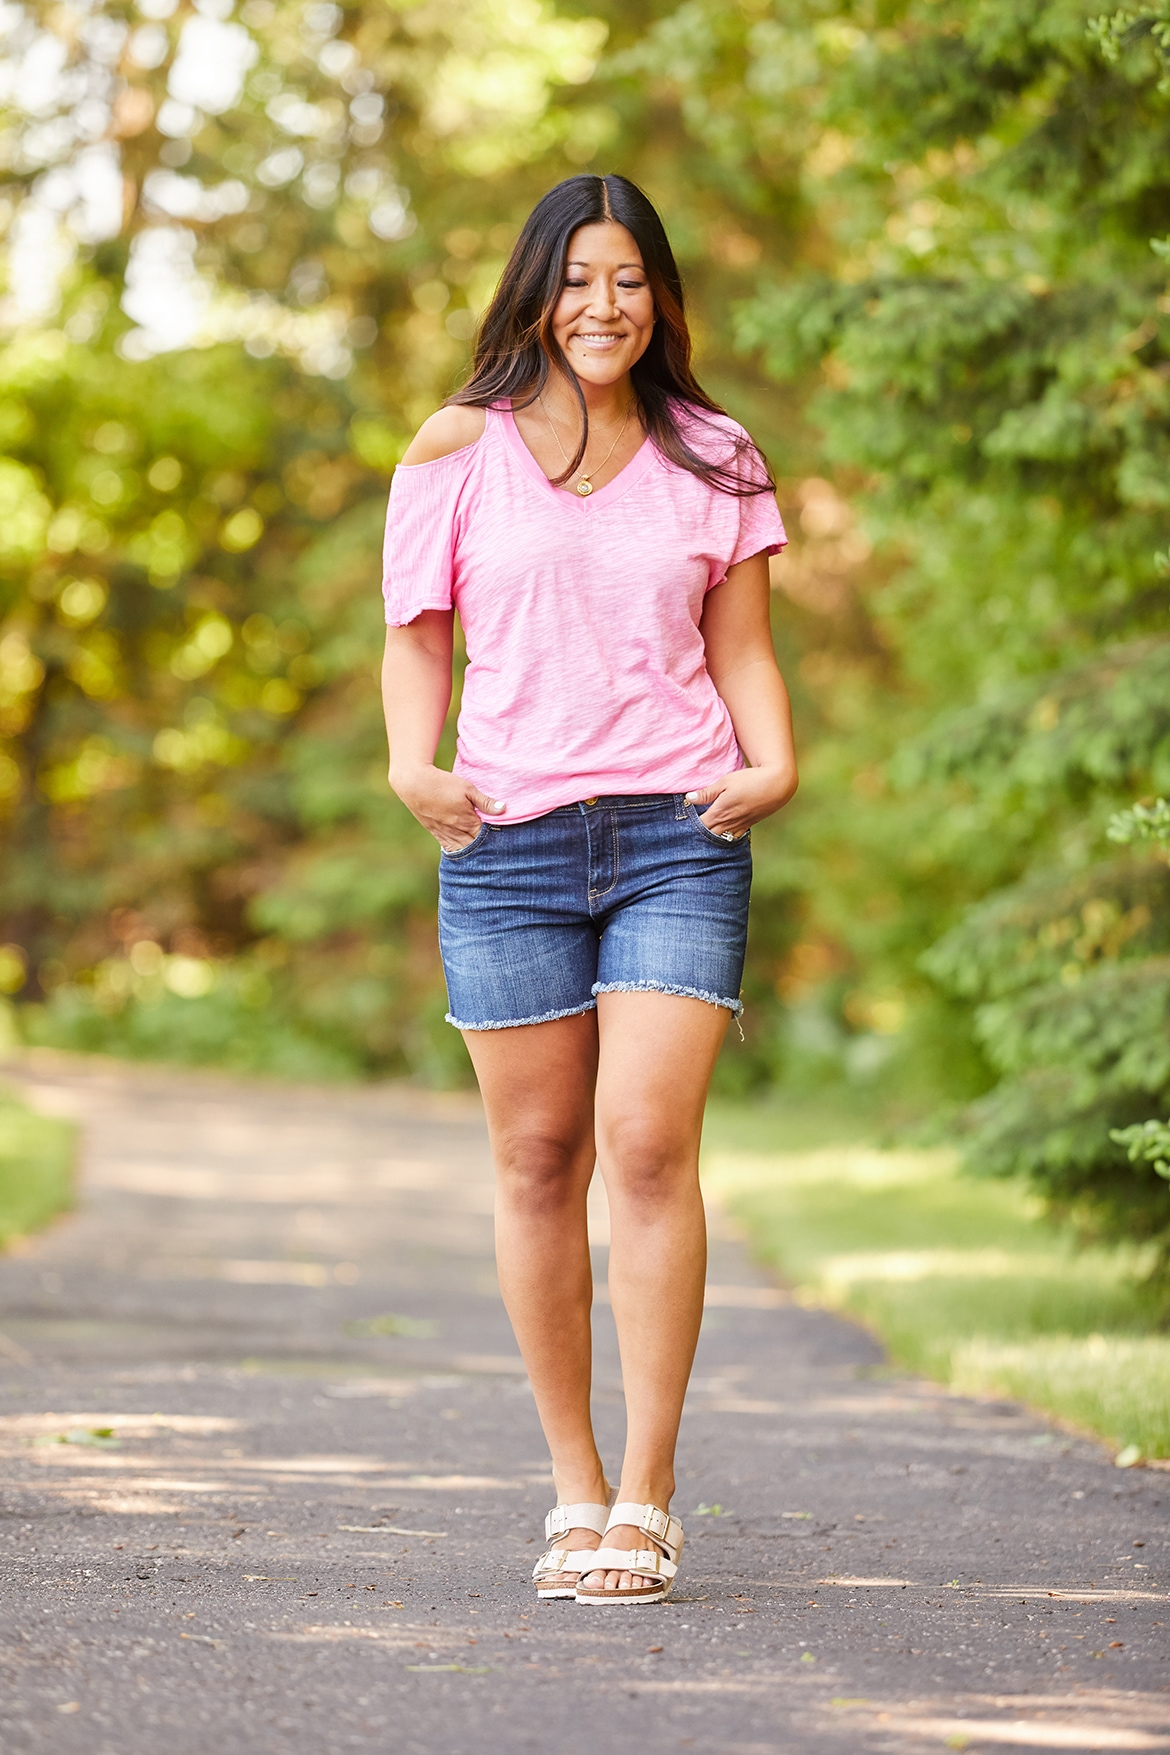 Kut from Kloth Gidget Shorts and Pink Cut Out Tee